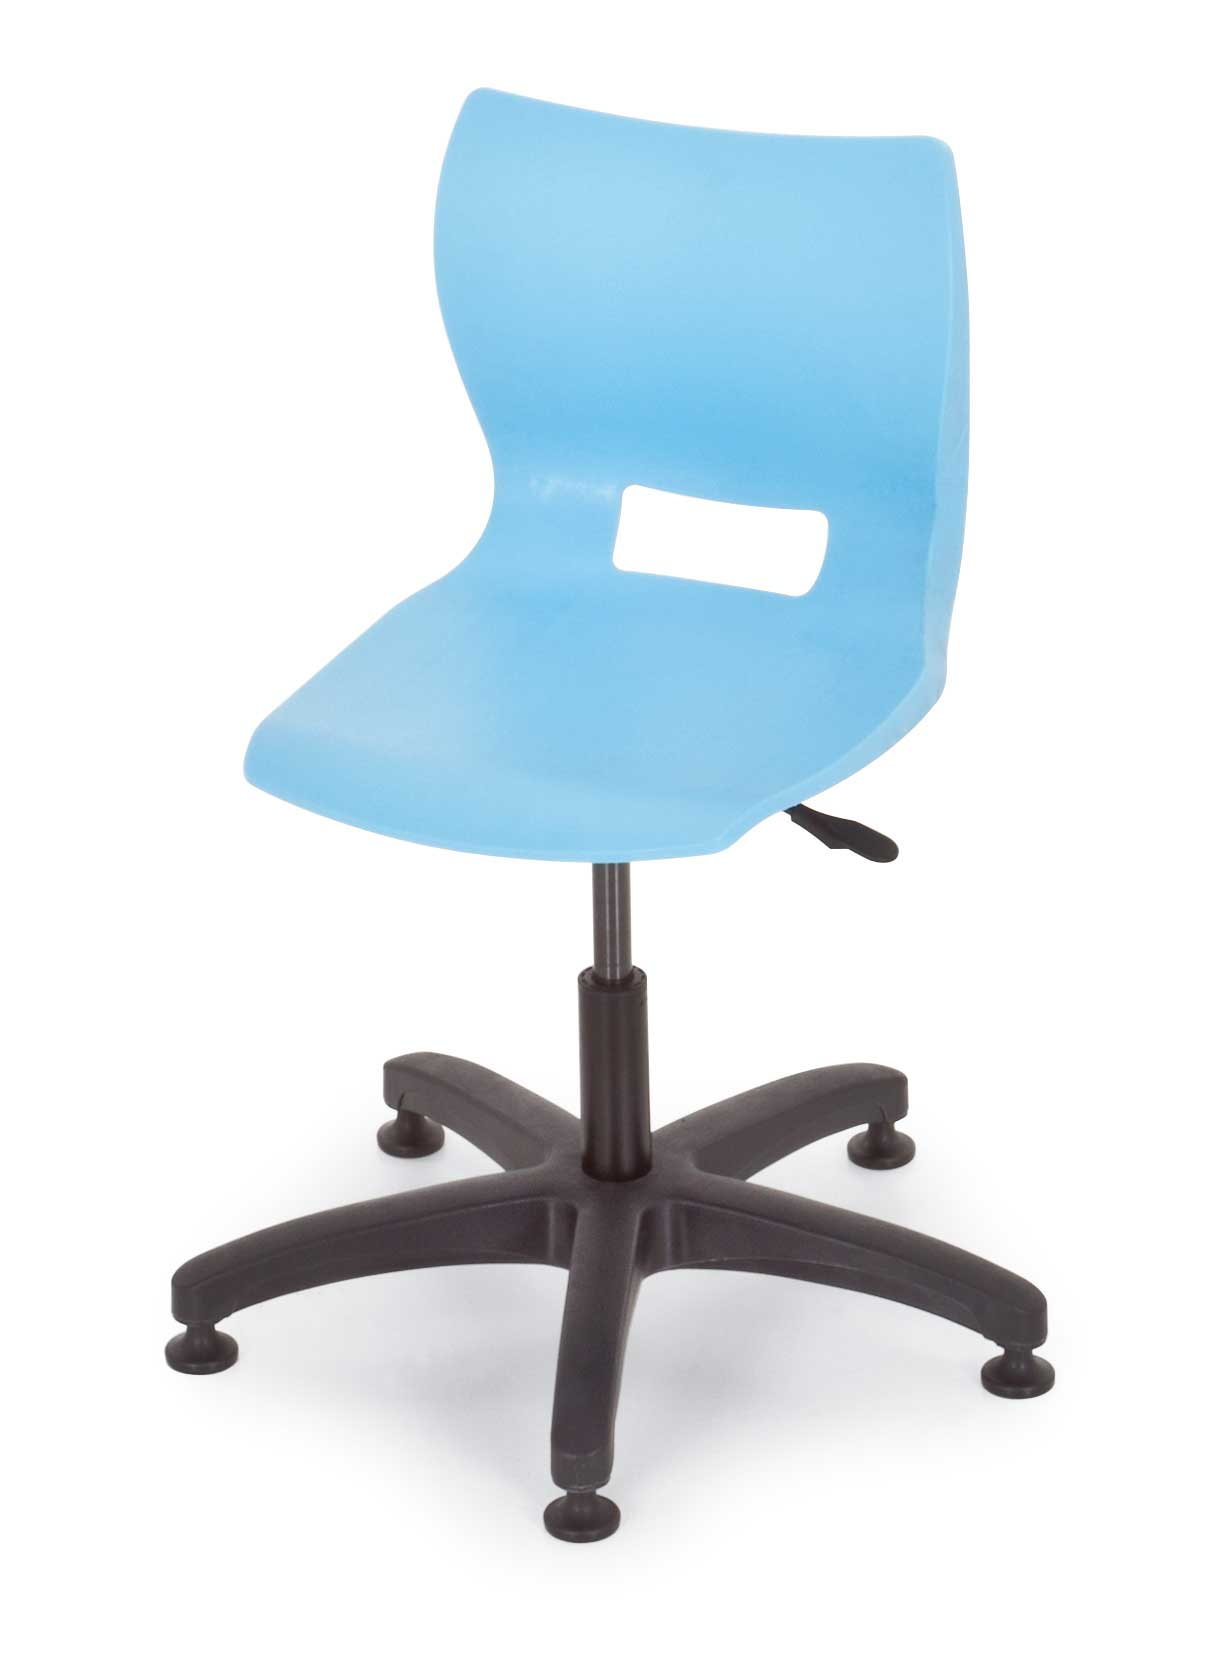 Plato blue adjustable height chairs